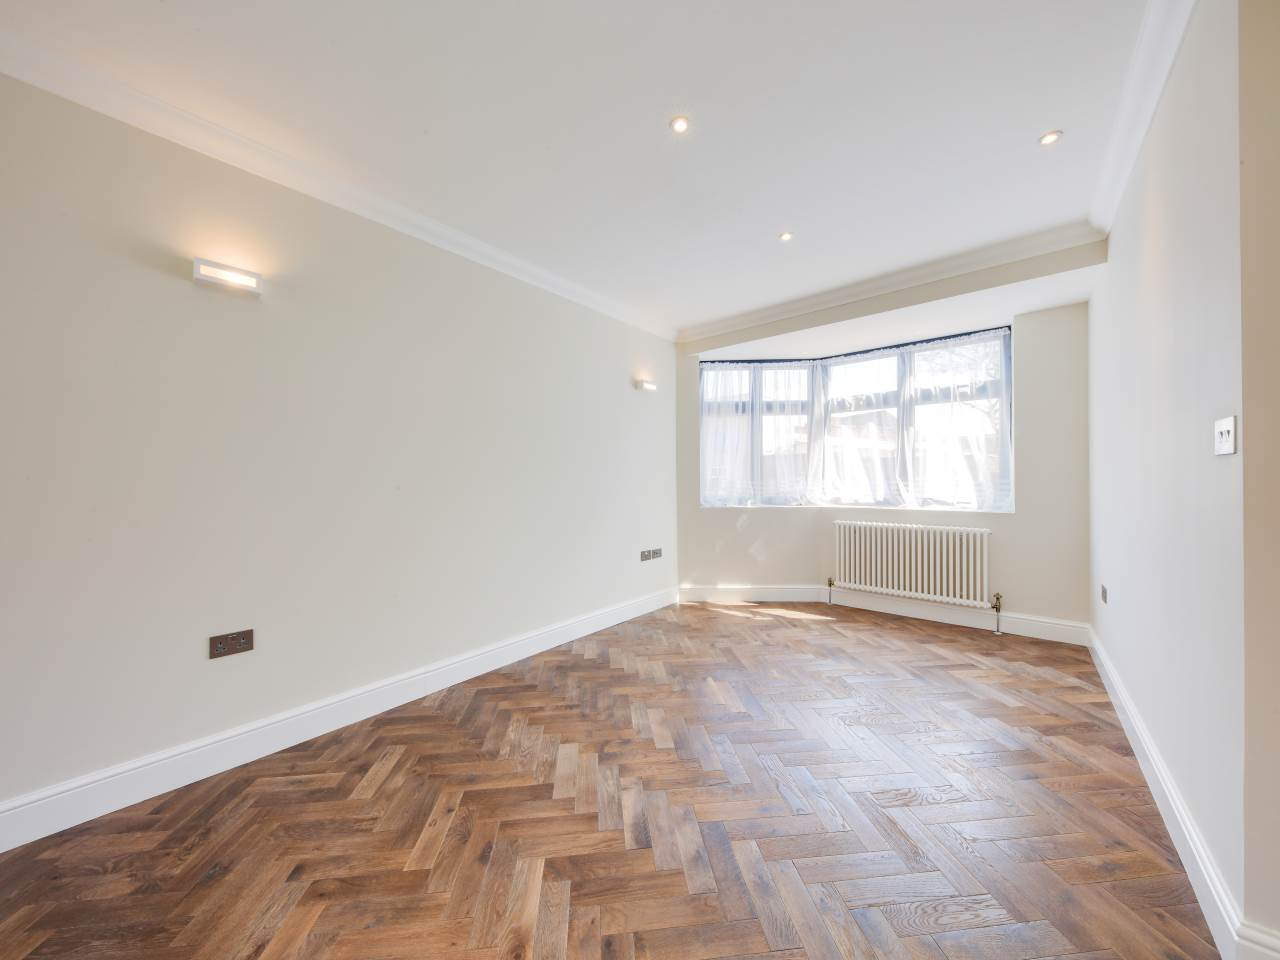 3 bed house for sale in Shernhall Street , Walthamstow  6